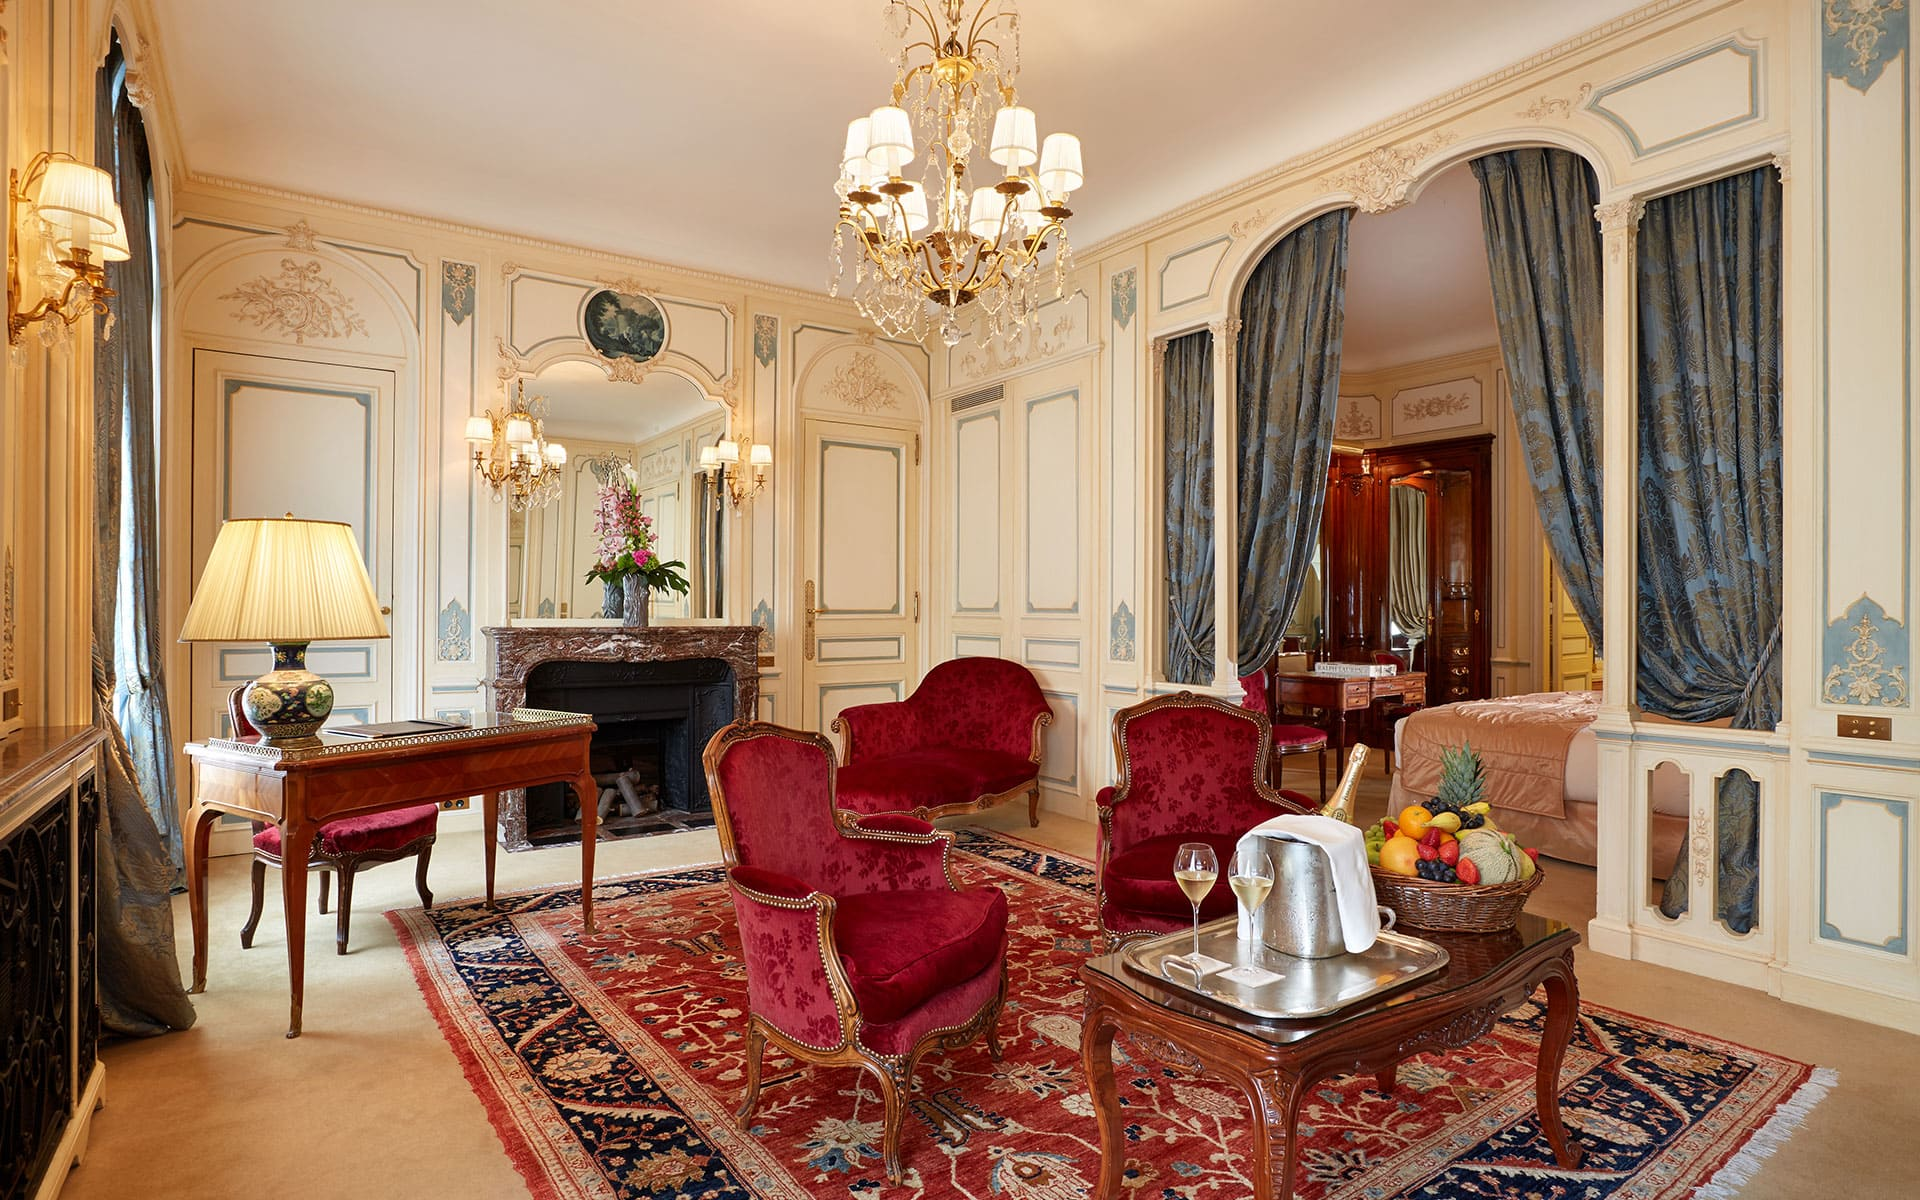 266/5-Suites/Suite-Signature-2-Living-Room - -CHotel-Raphael-Paris.jpg